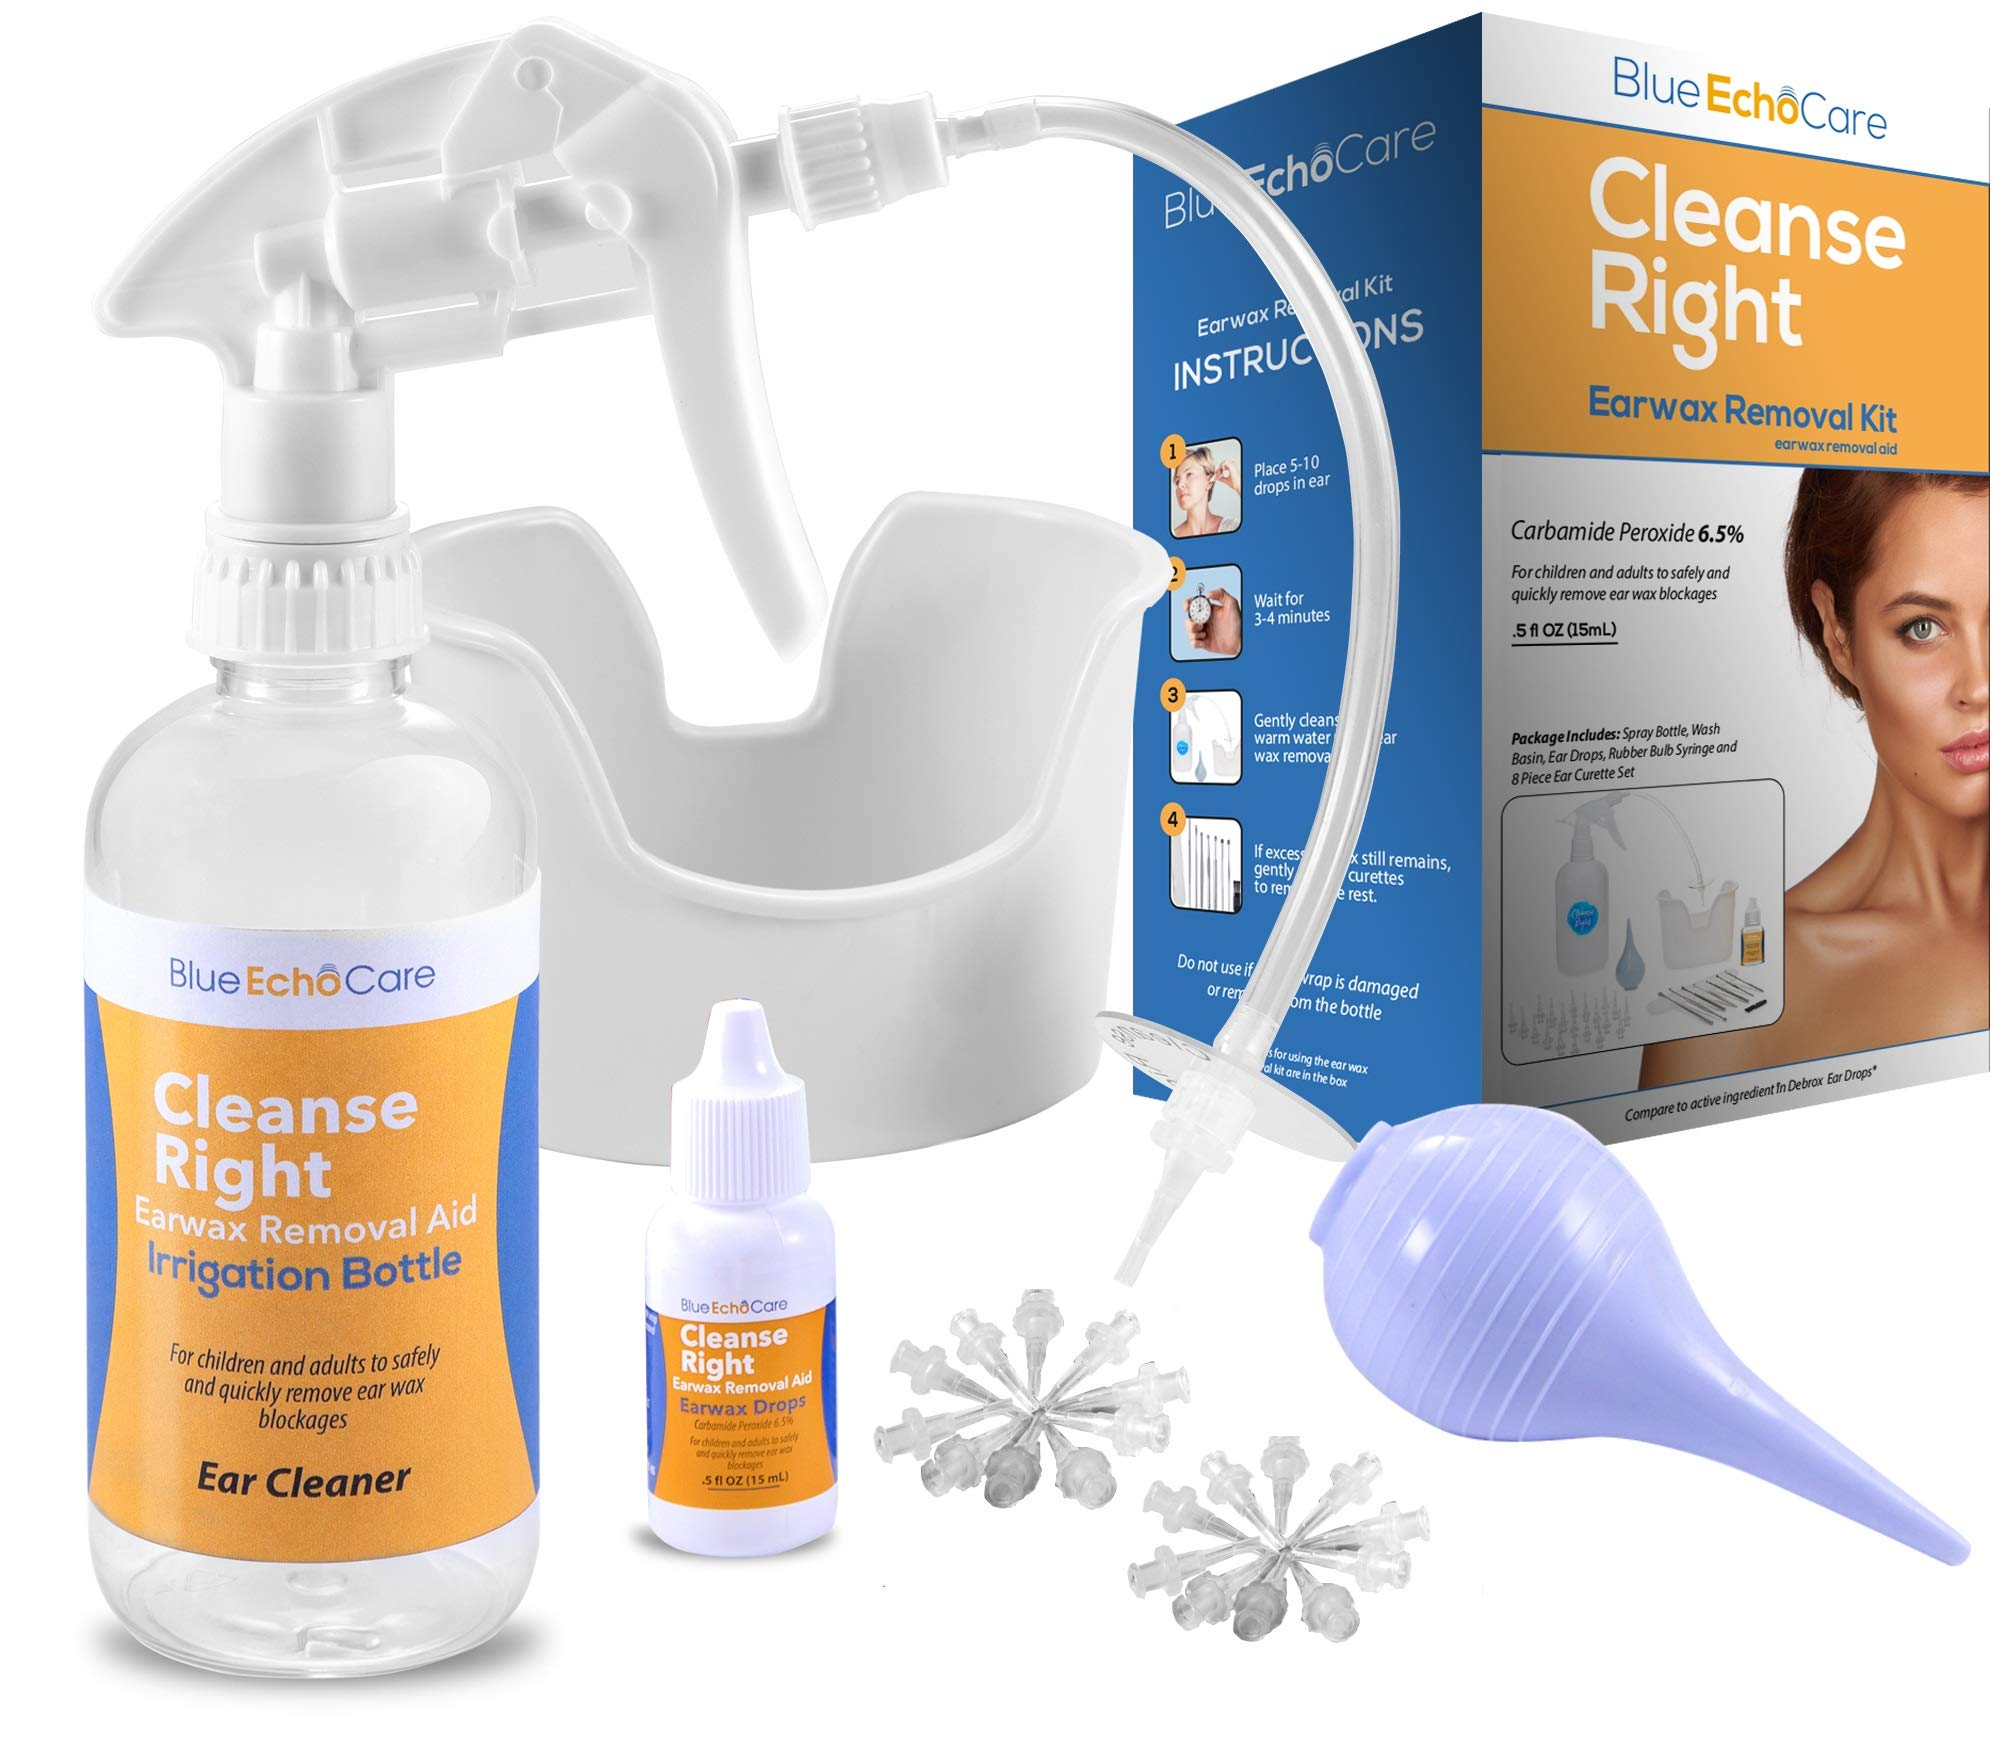 Cleanse Right 2nd Generation Ear Wax Removal Tool Kit - USA MADE 1 Bottle of .5OZ Ear Drops! Irrigation Bottle, 20 Disposable Tips, Wash Basin, Bulb Syringe